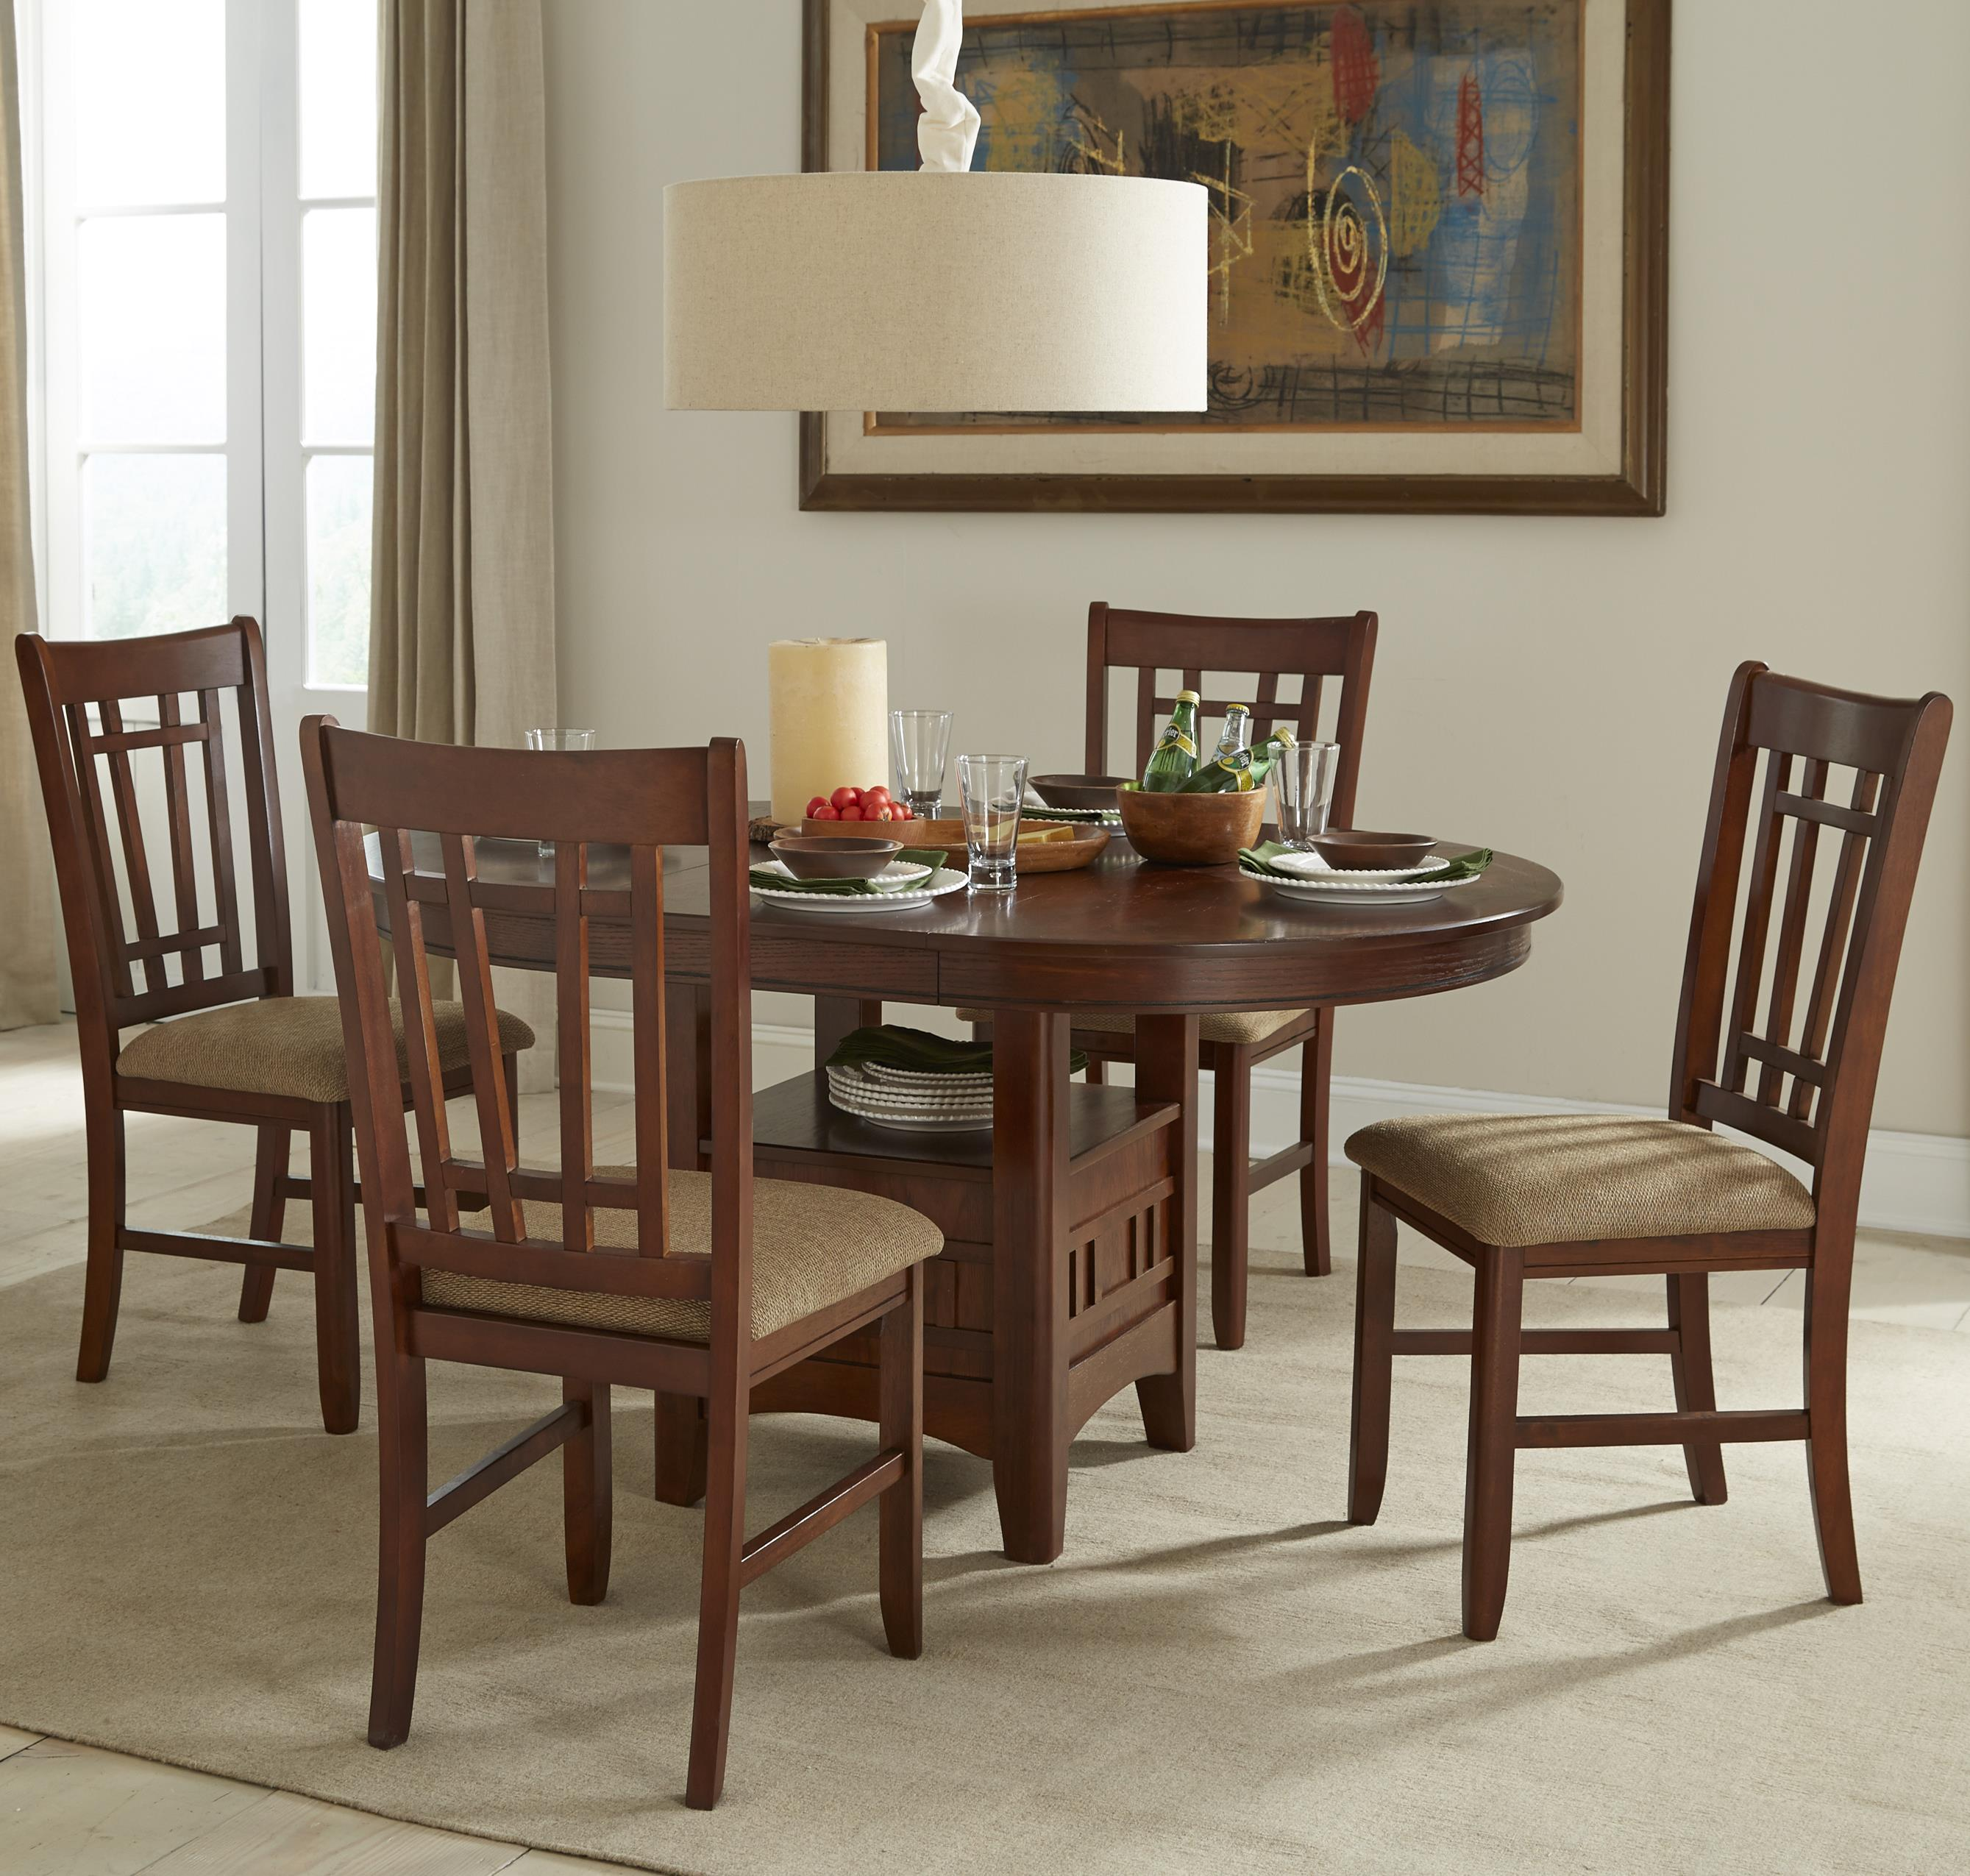 breakfast table and chairs set convertible lounge chair oval dining with cushioned side by